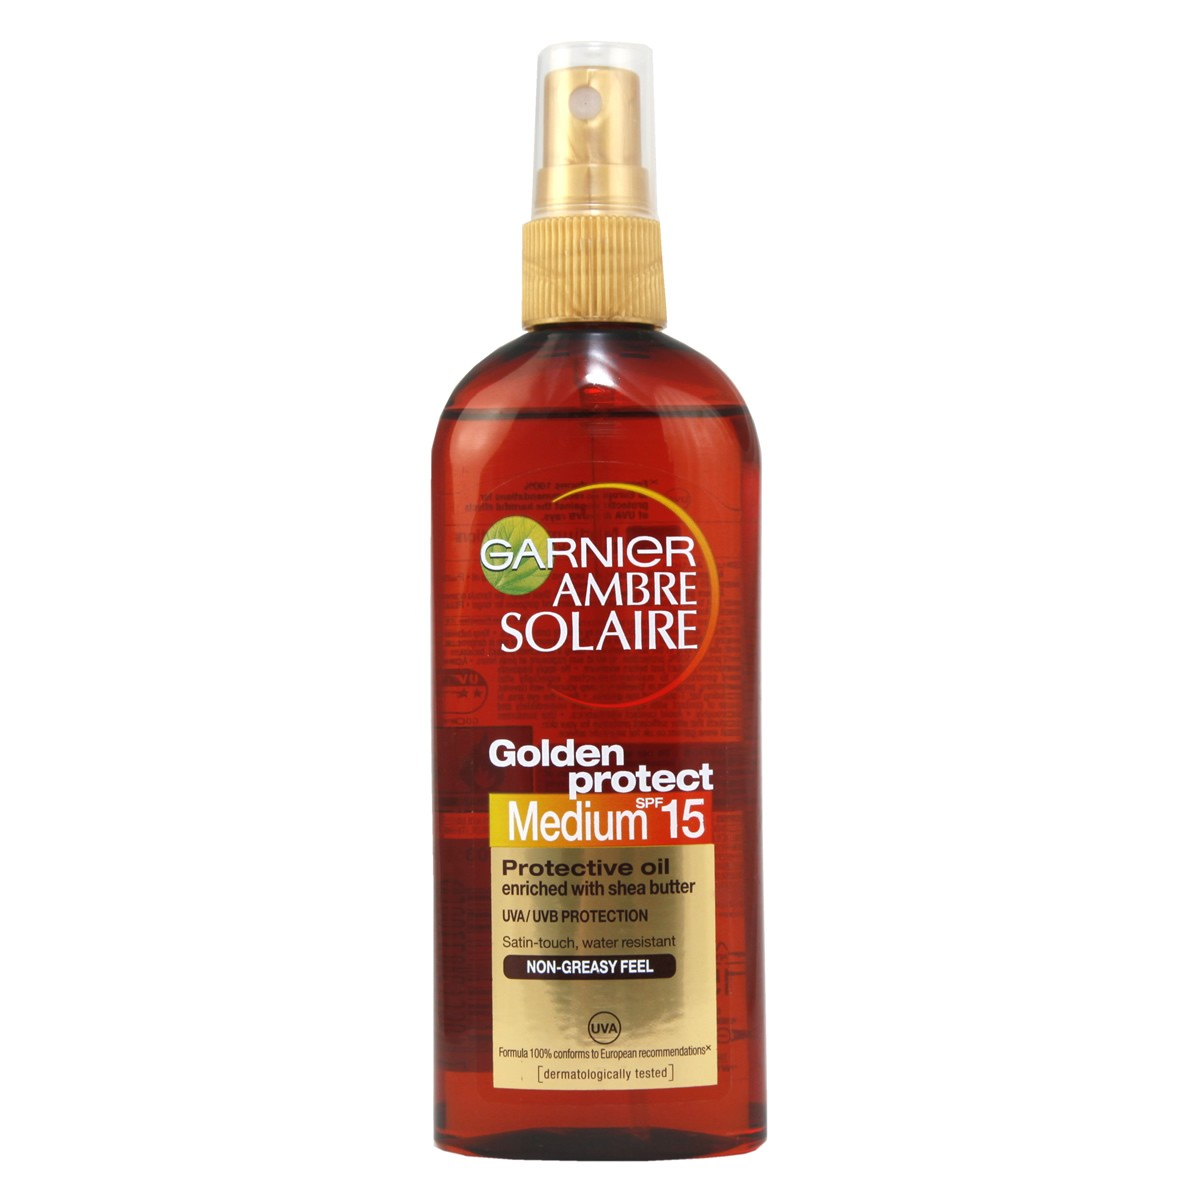 Garnier Ambre Solaire Golden Protect Oil SPF15 Spray